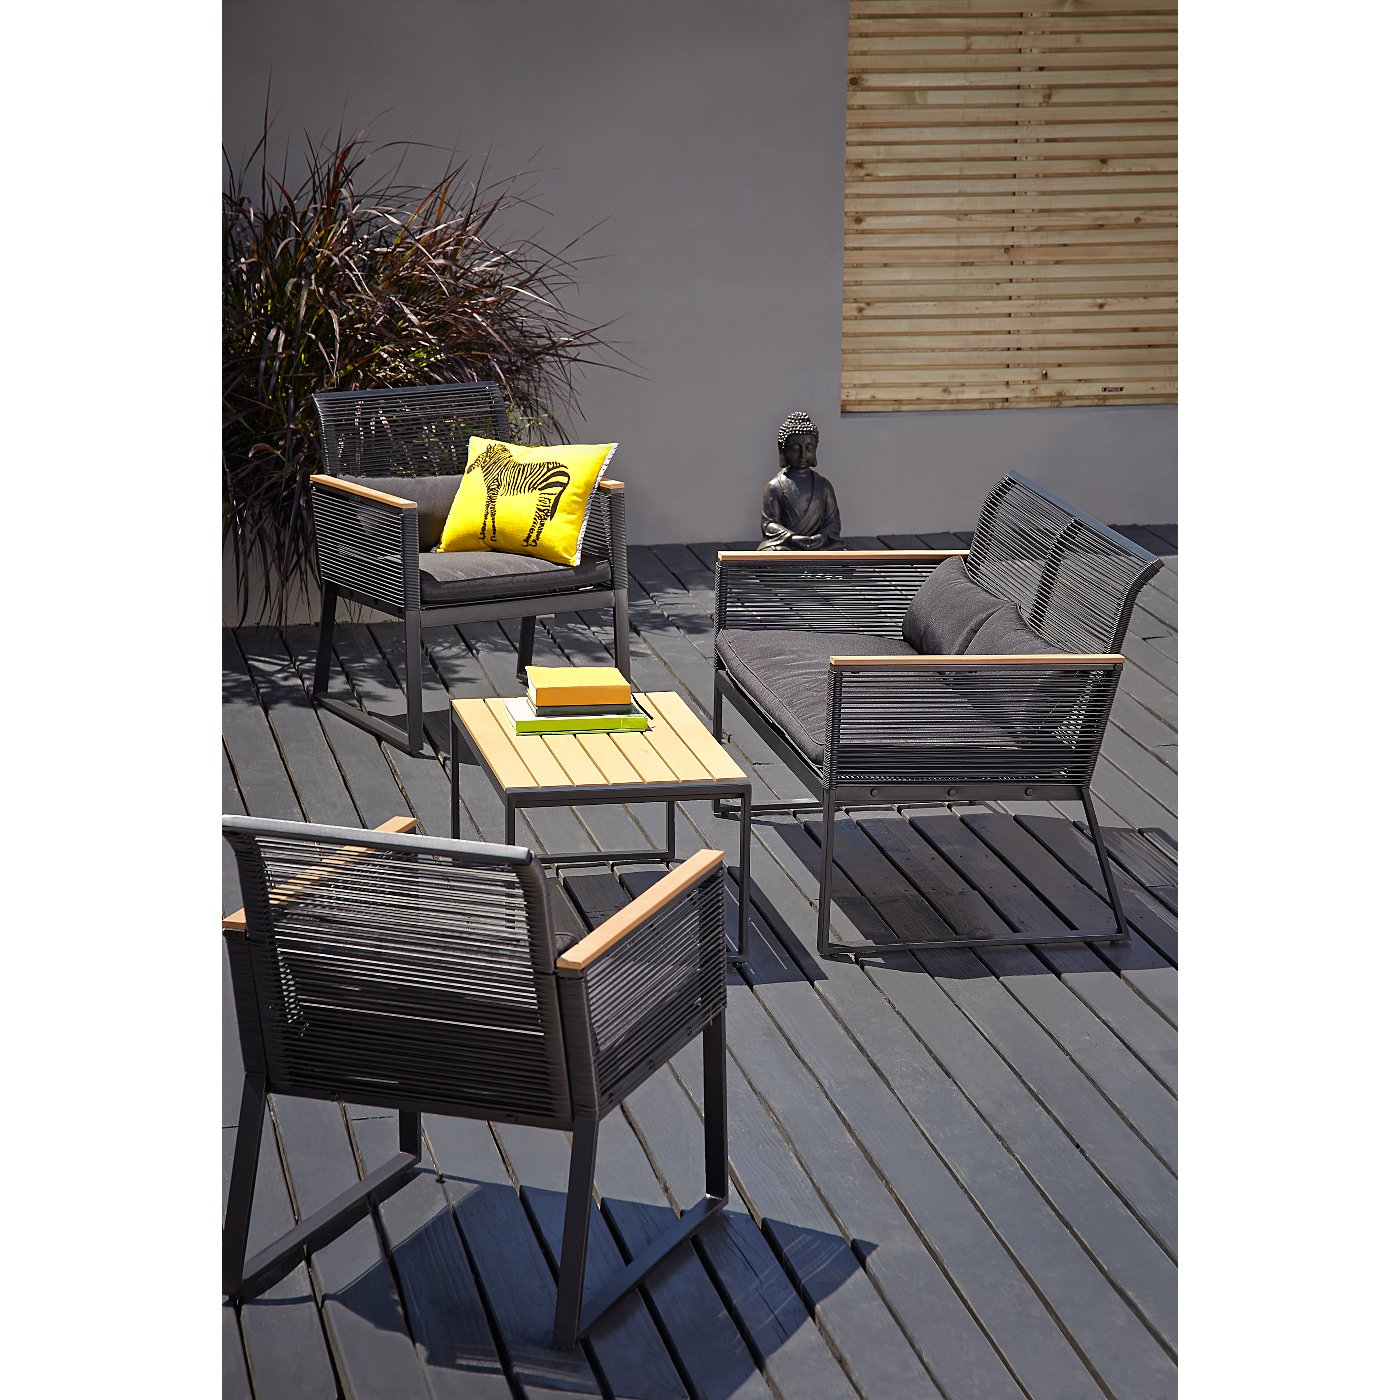 Noir 4 Piece Garden Set   Get The Look  Loading zoom. Noir 4 Piece Garden Set   Get The Look   Garden Furniture   George